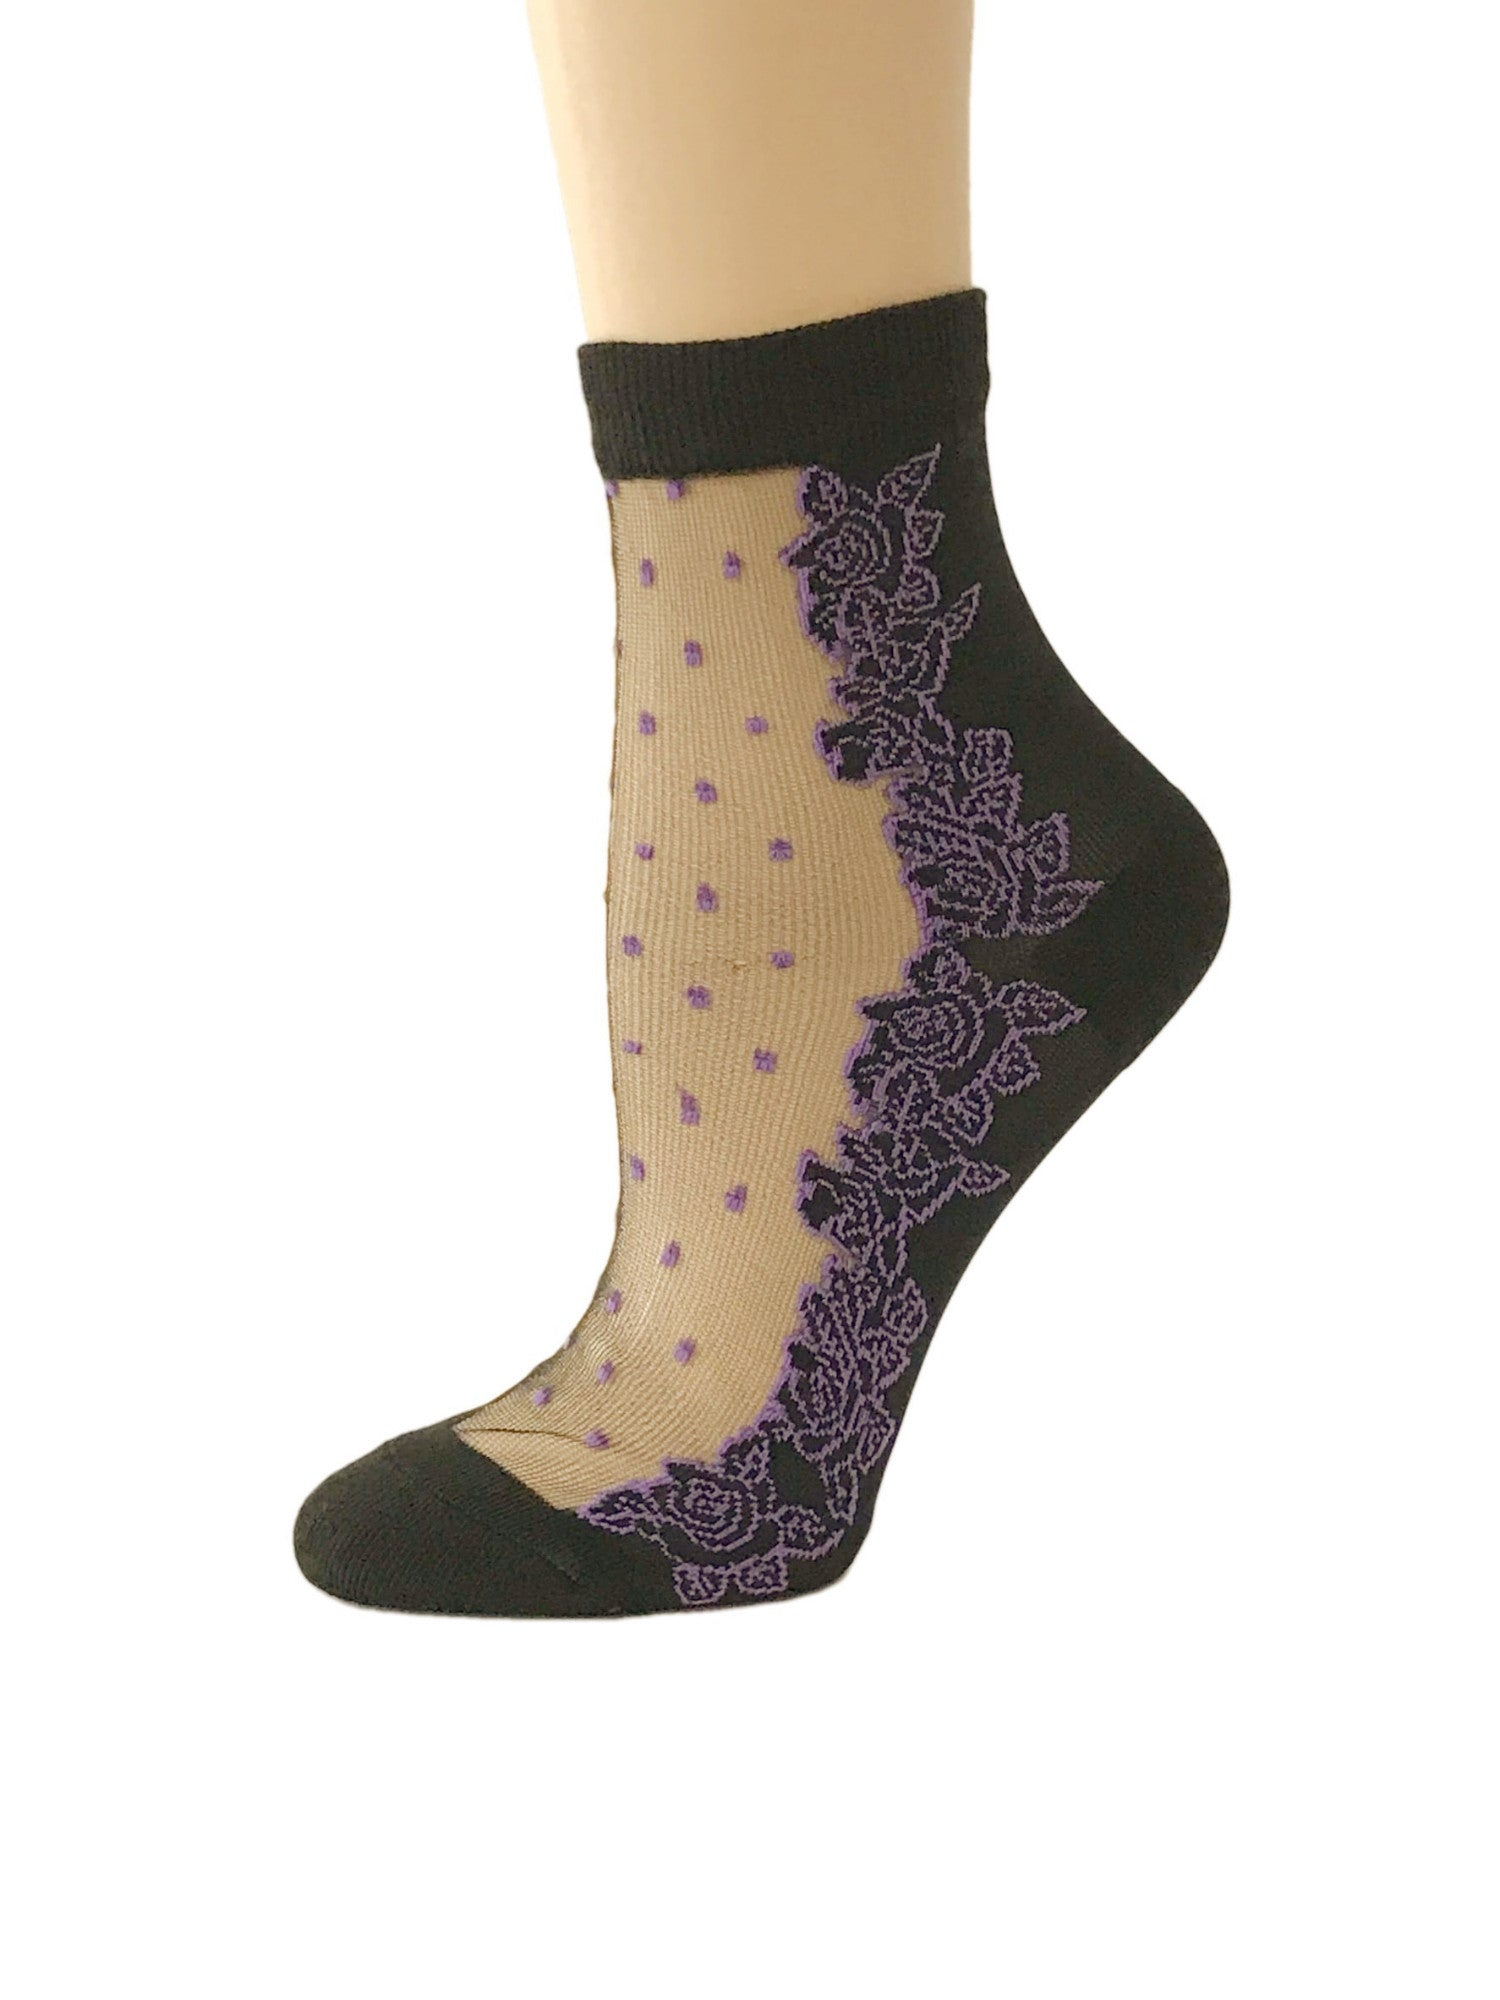 Dotted Purple Flowers Sheer Socks - Global Trendz Fashion®